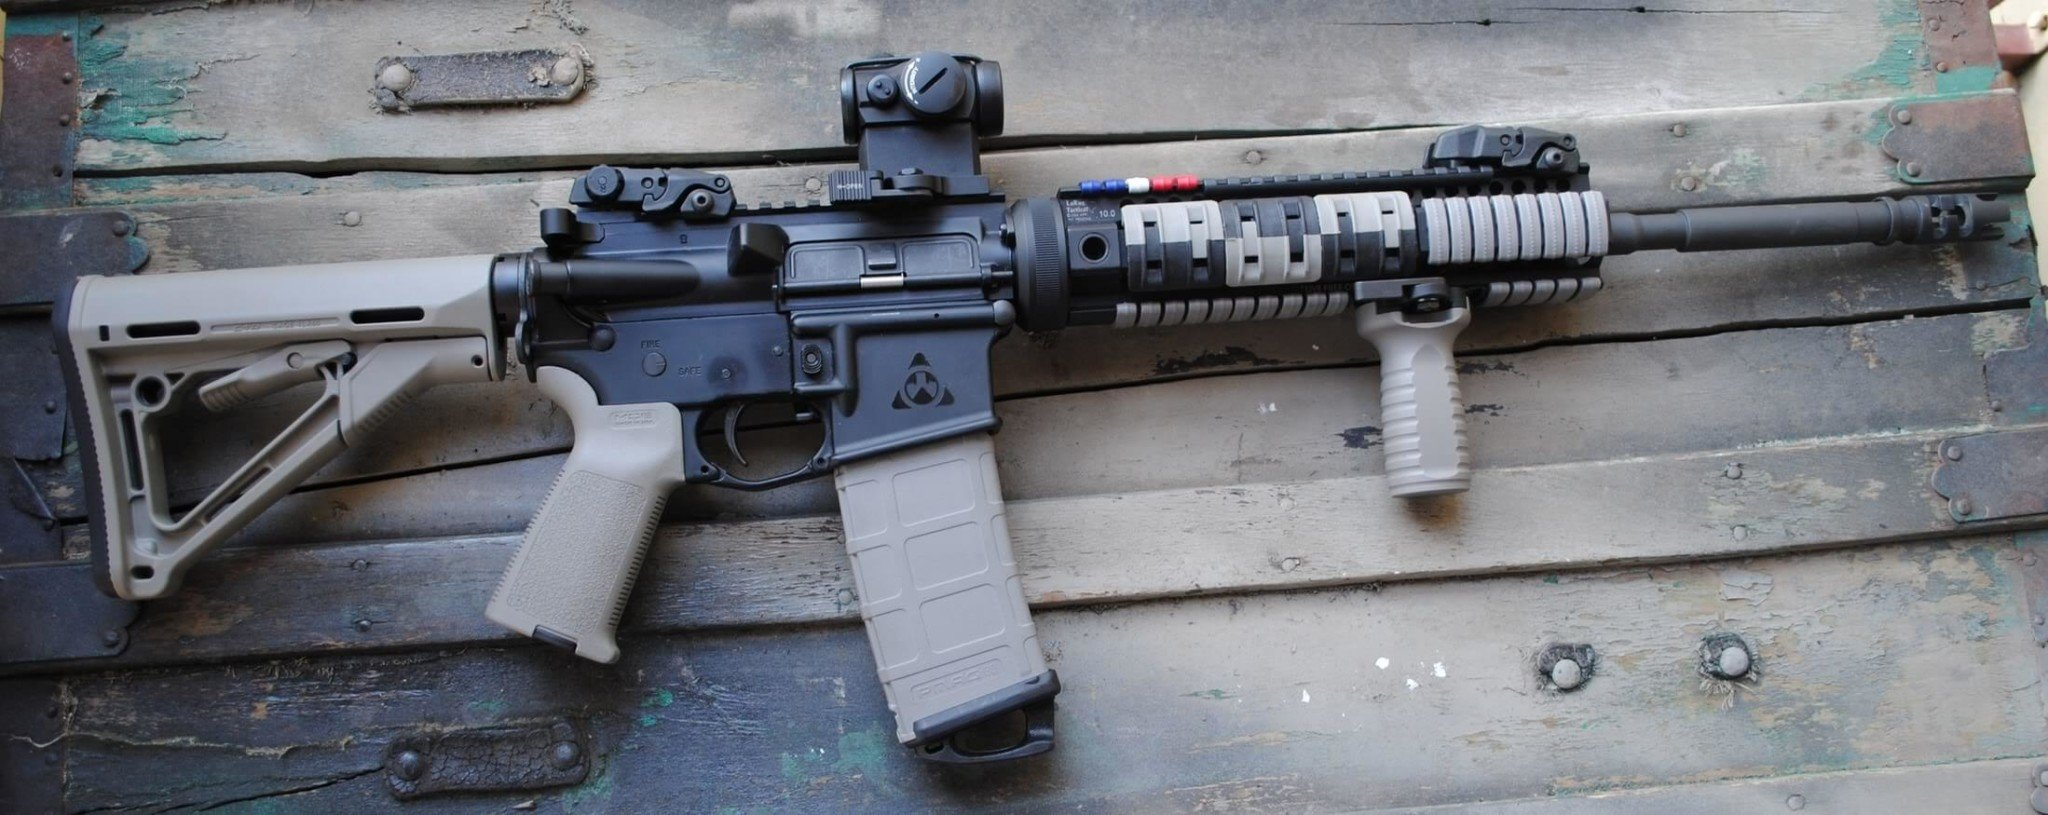 Bushmaster Ar 15 Parts And Accessories | Reviewmotors co